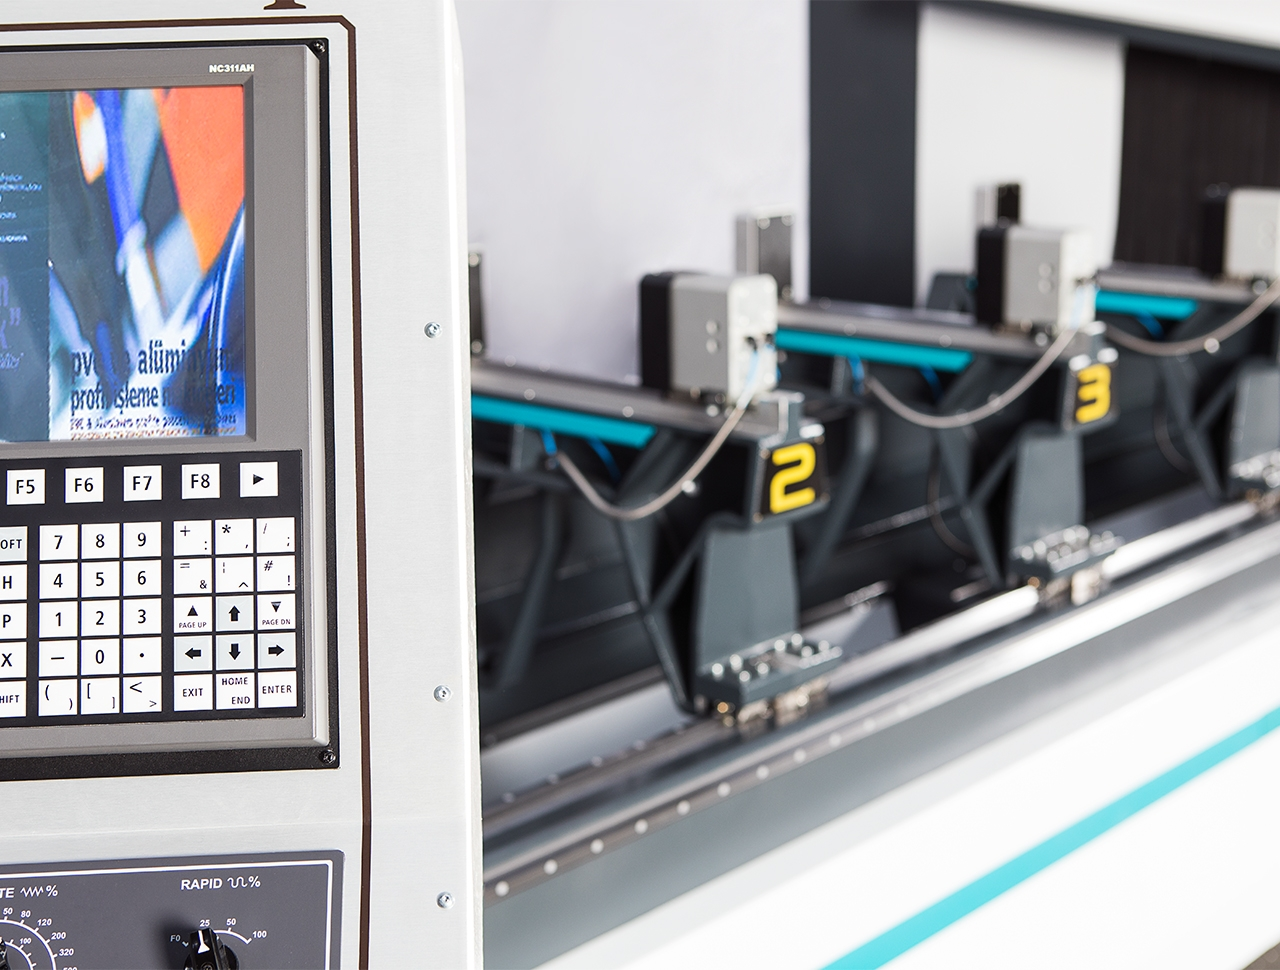 aim 7510 5 axes aluminium profile processing center cnc machine 8